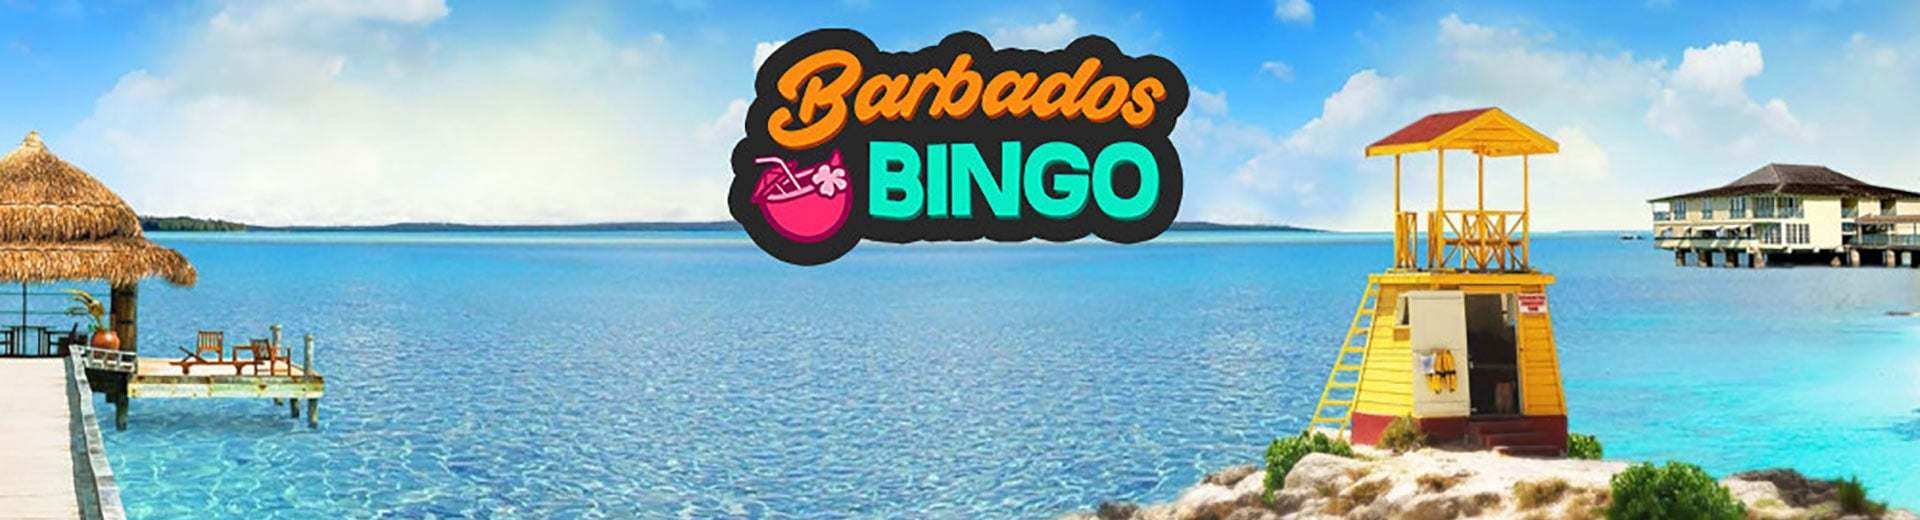 Barbados Casino Welcome Bonus: Win up to 500 Free Spins on Fluffy Favourites